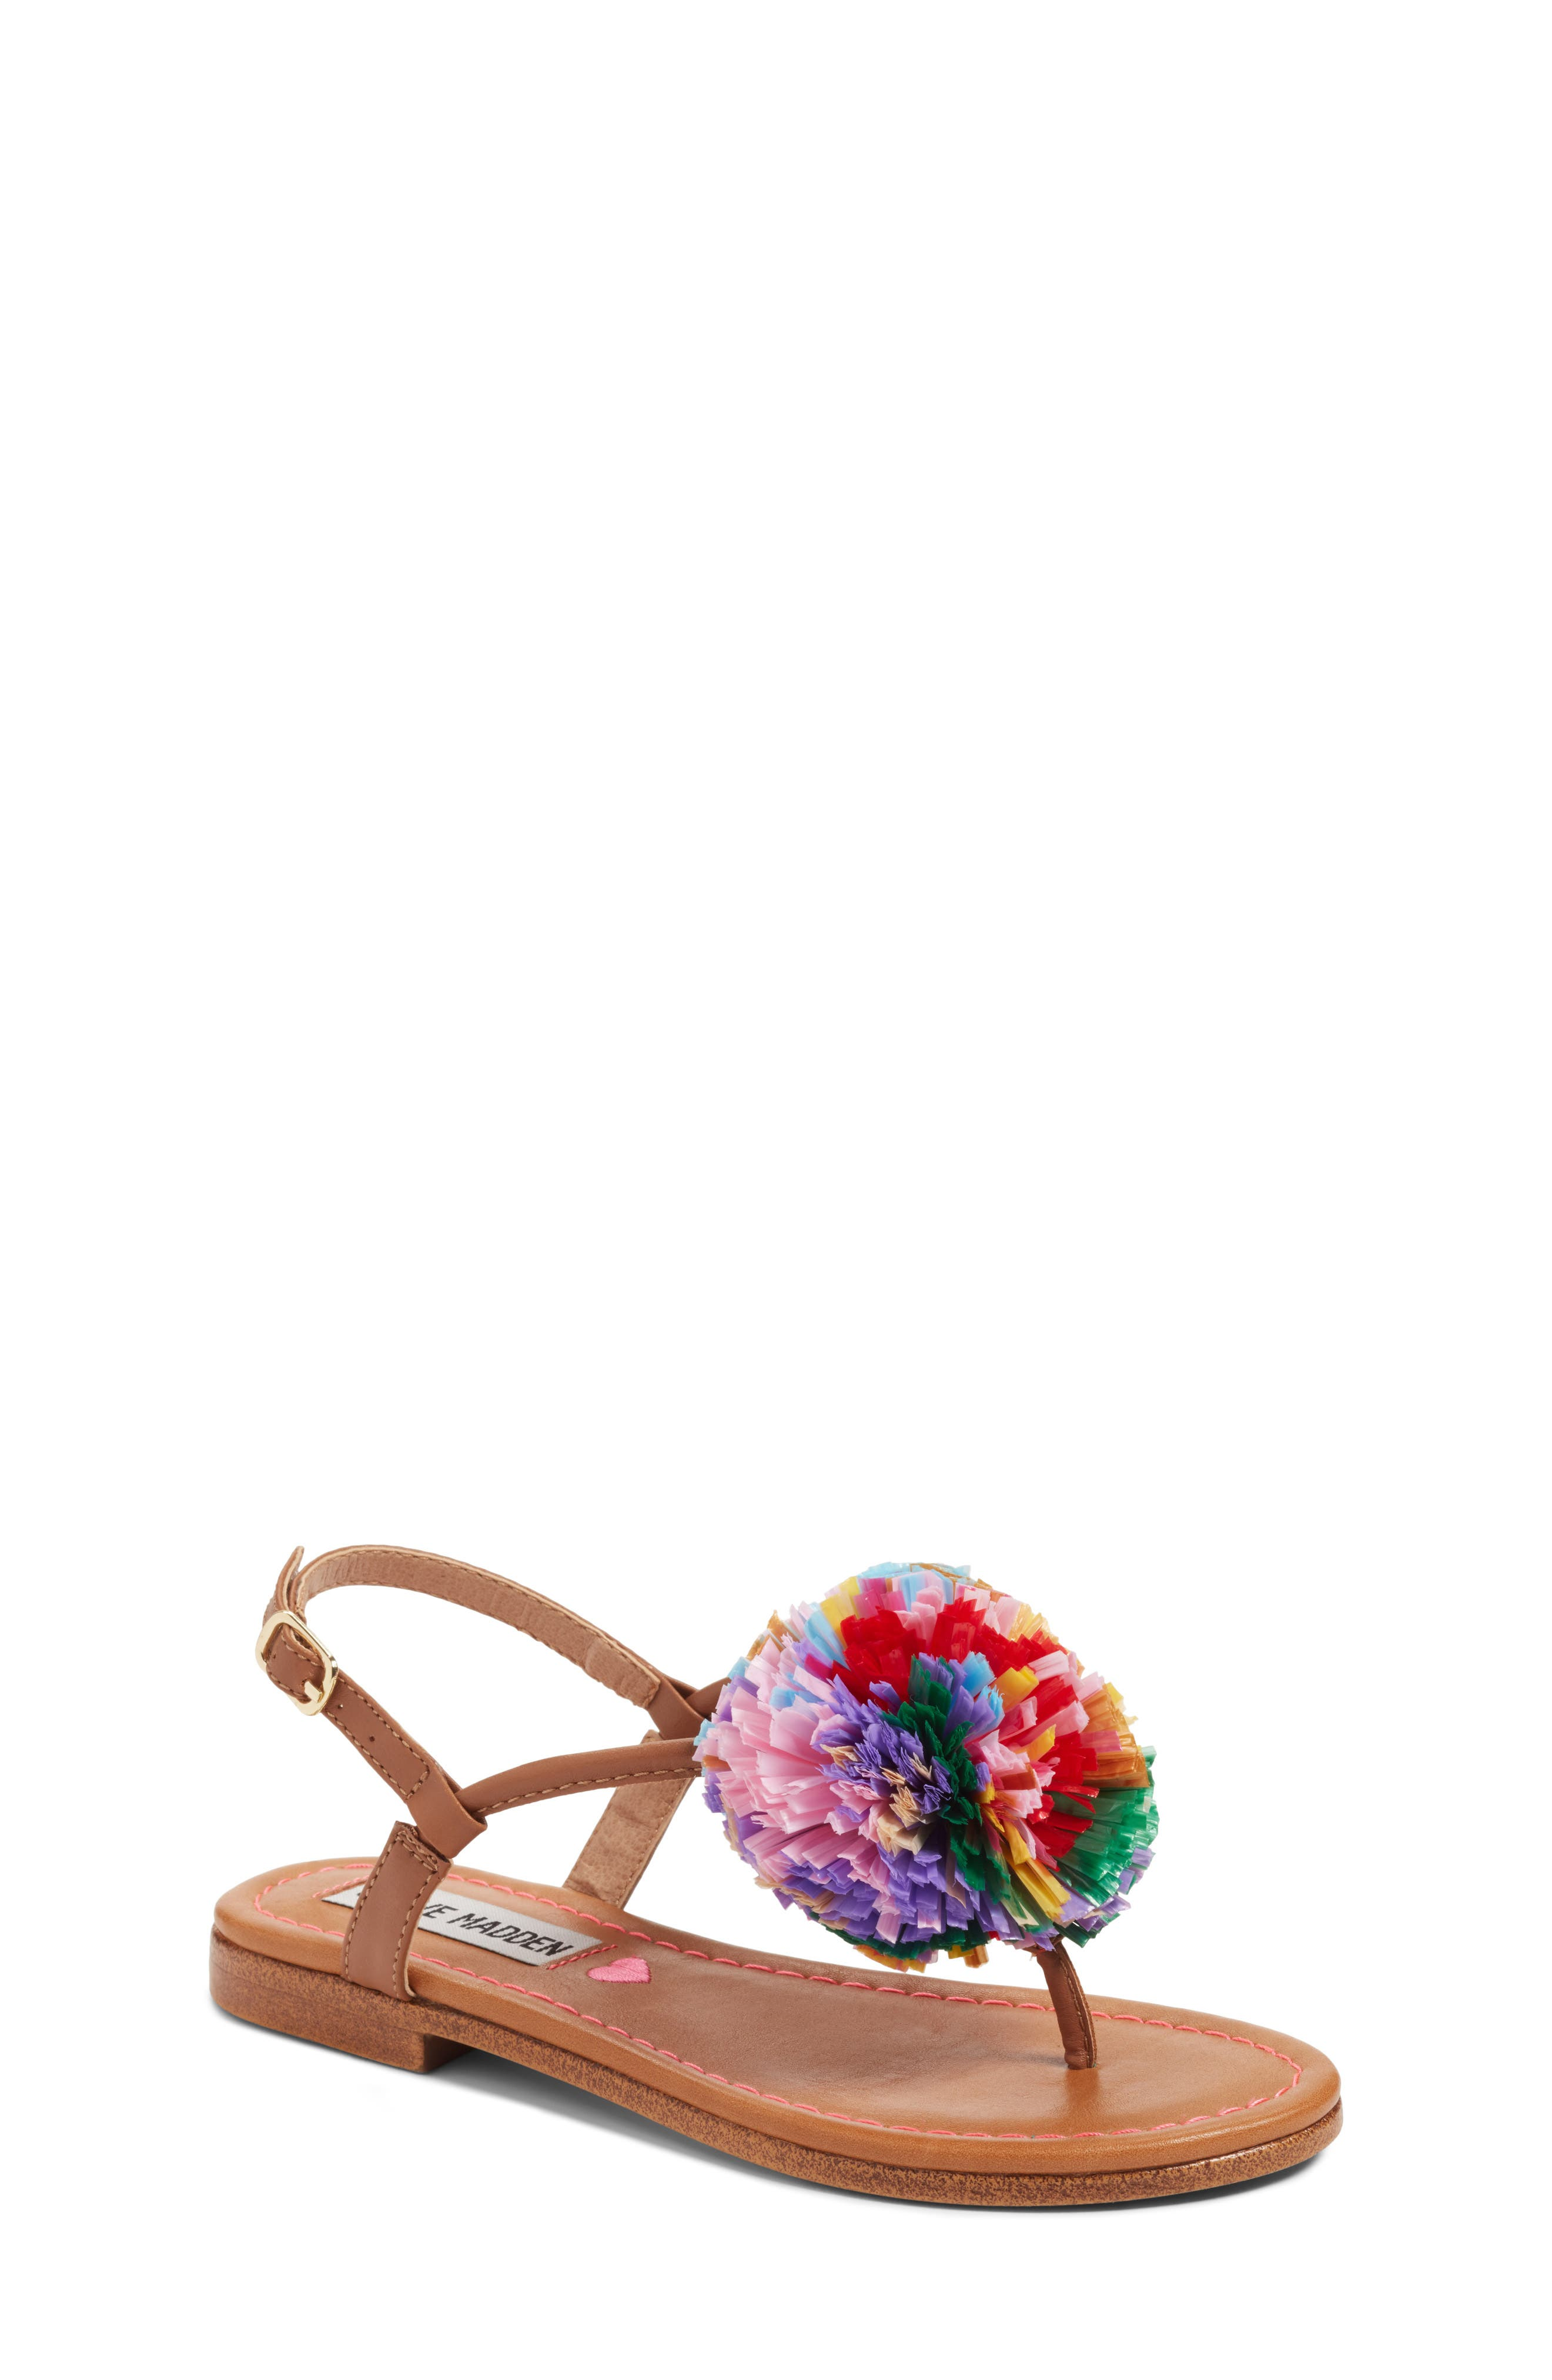 JCherry Pompom Sandal,                         Main,                         color,